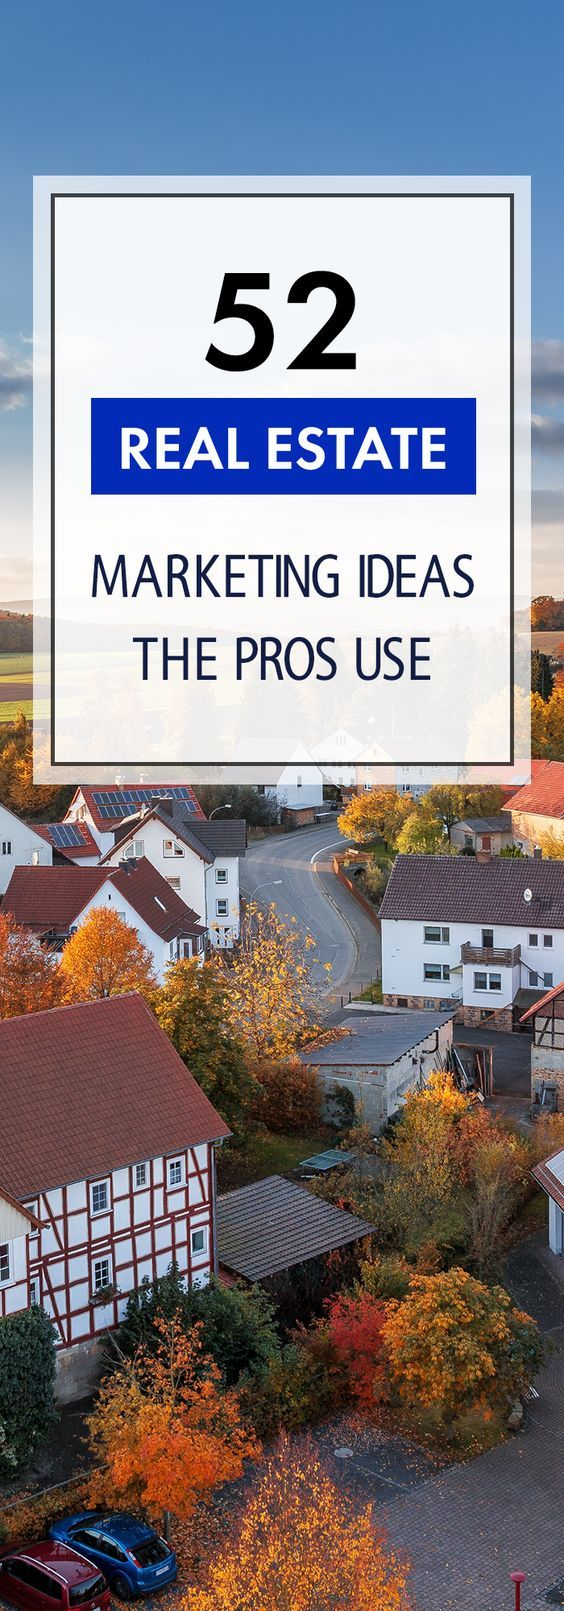 The Best Real Estate Marketing Ideas And Tips From The Pros For